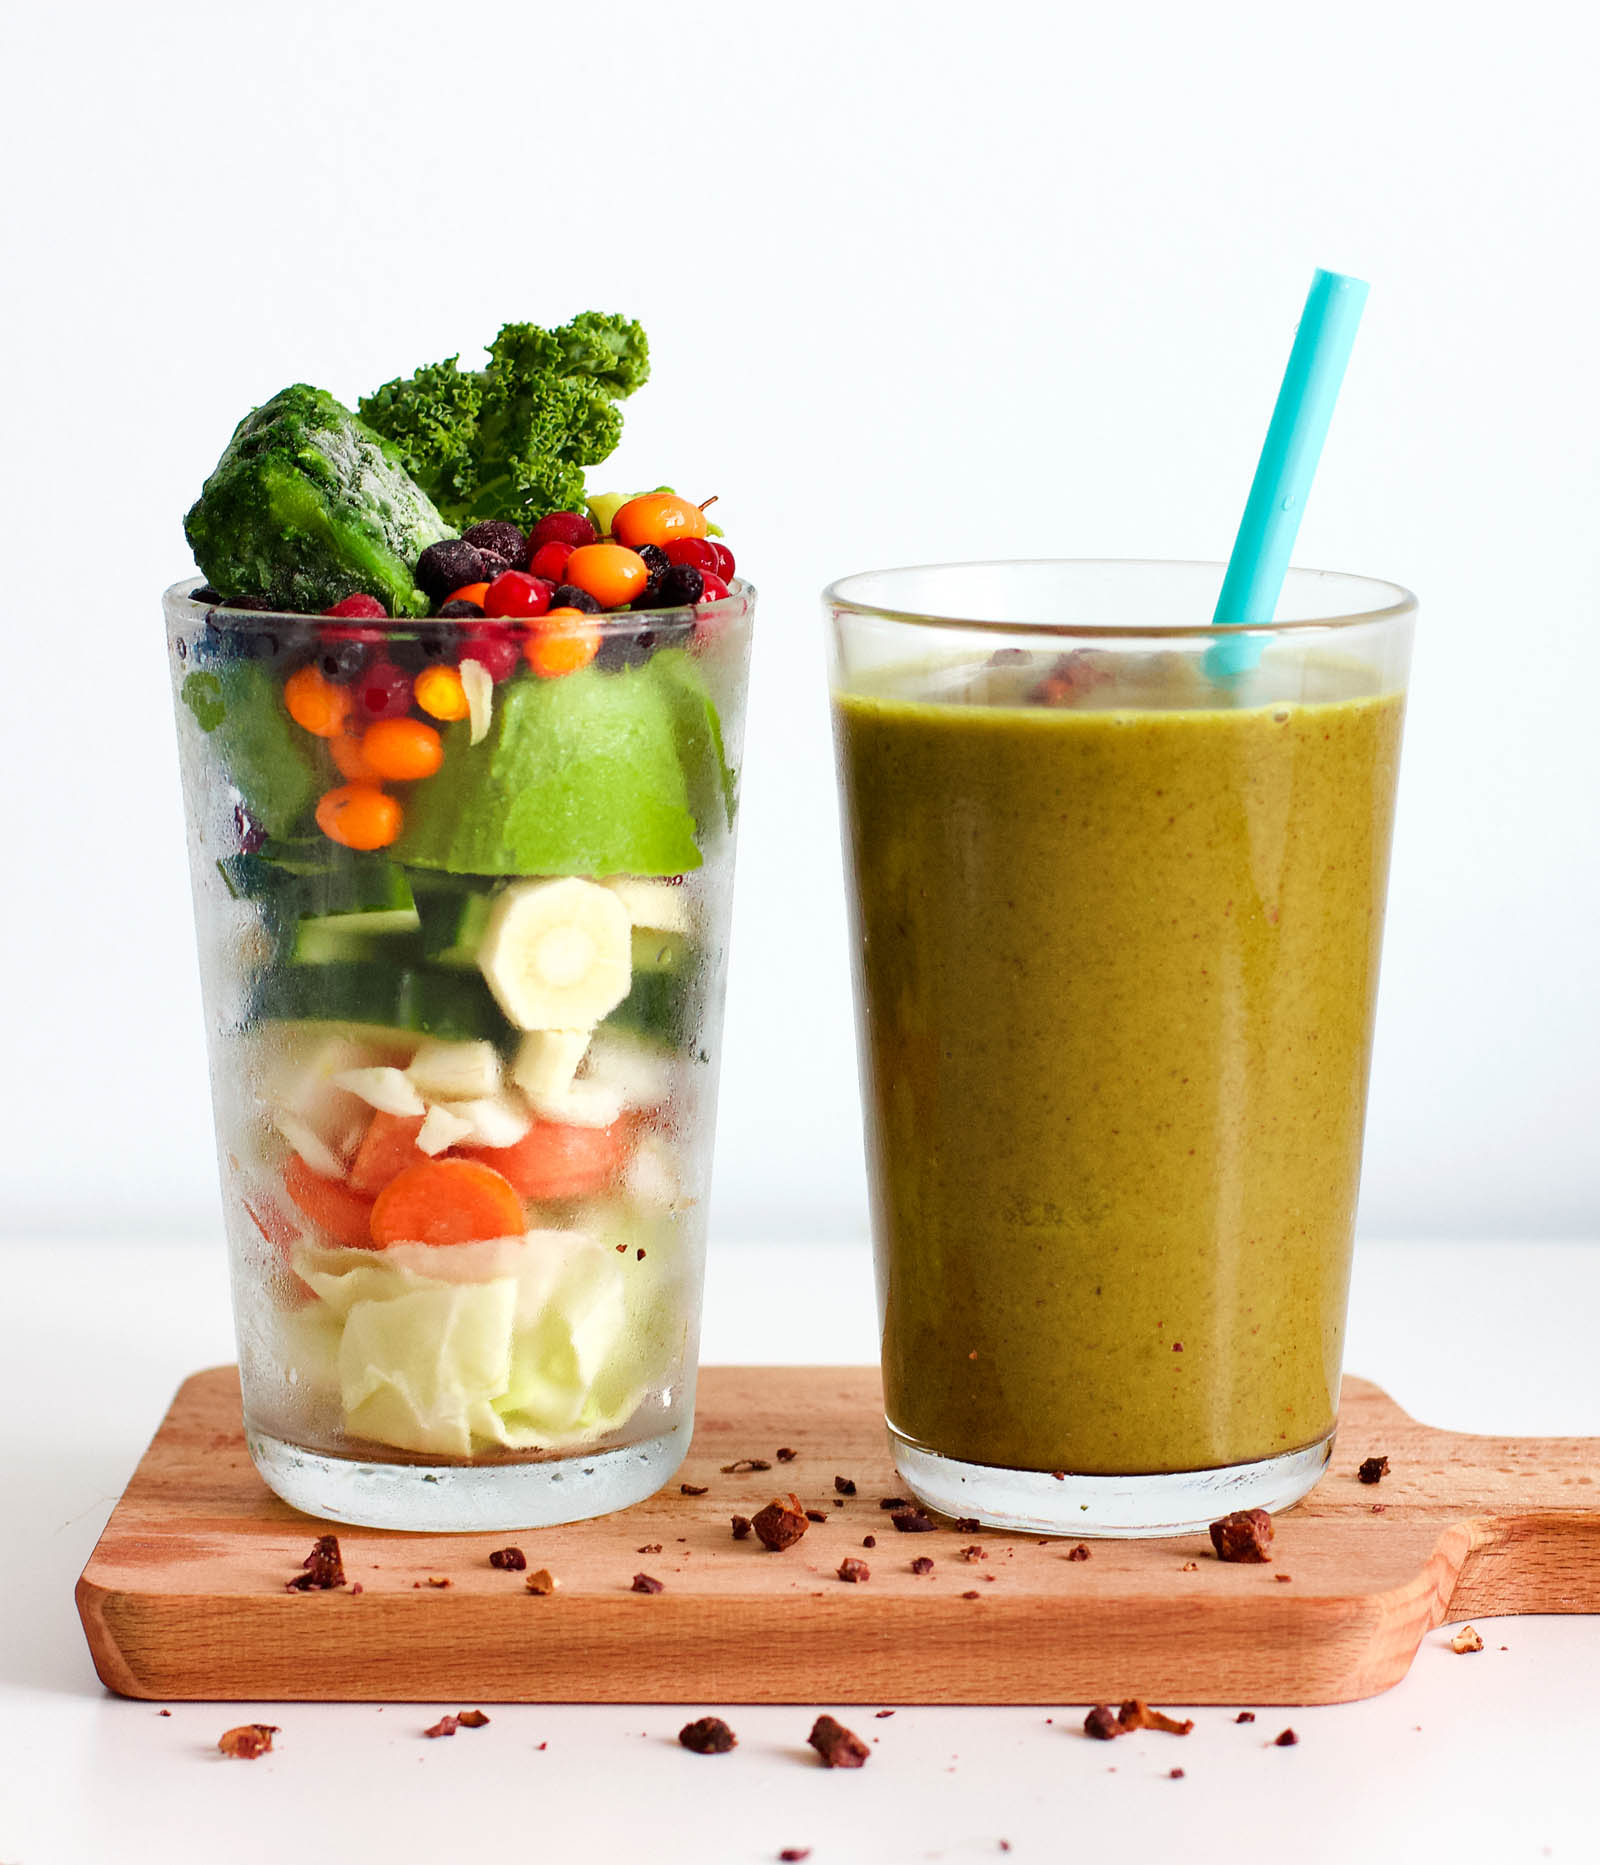 Glass with fruits and vegetables placed near another glass with fresh smoothie (Super Green Shot Energy Smoothie).